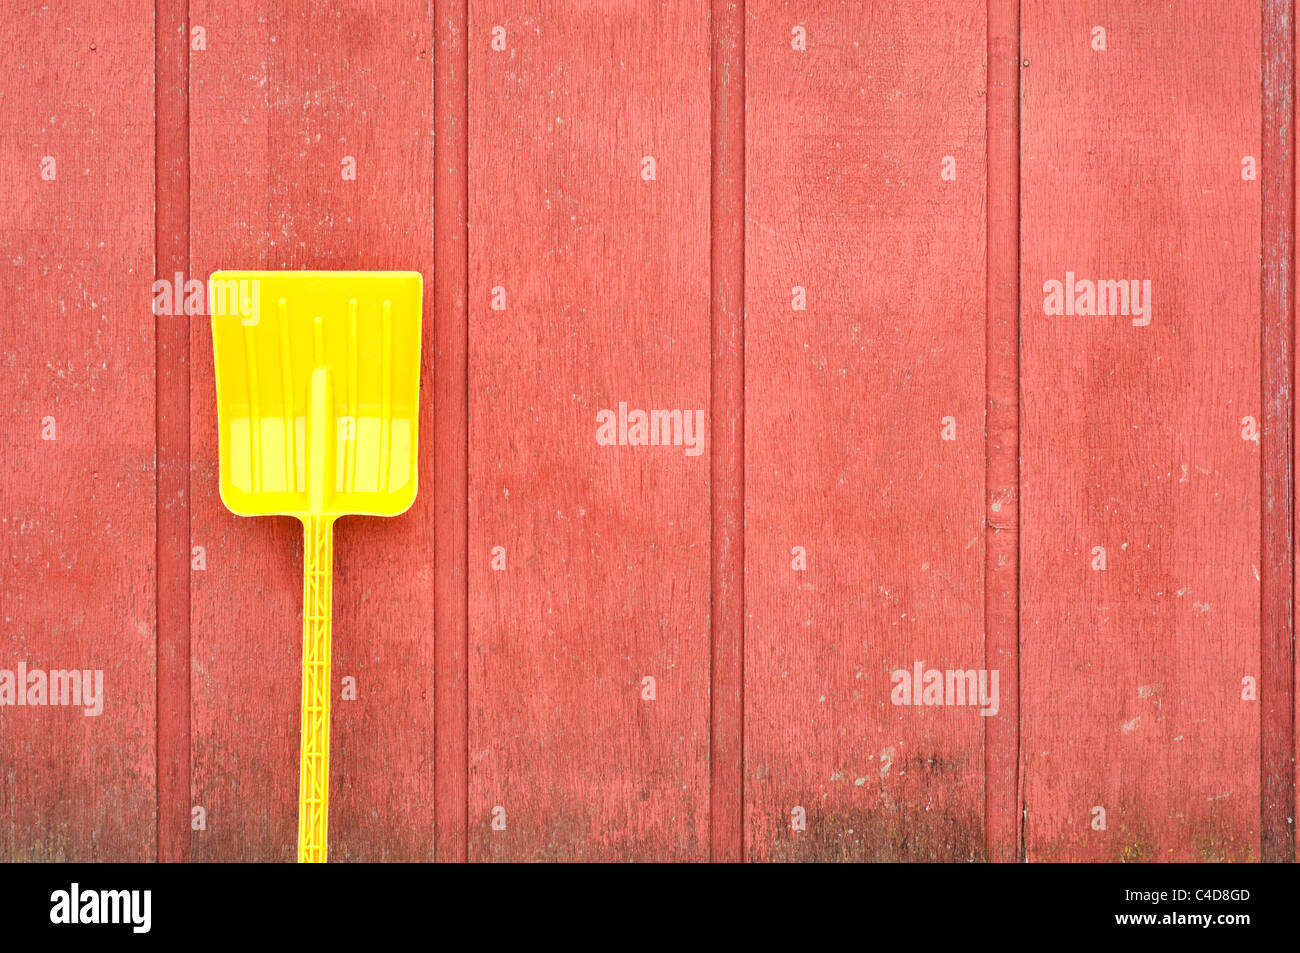 A plastic yellow toy shovel leans against a red wooden barn wall - Stock Image